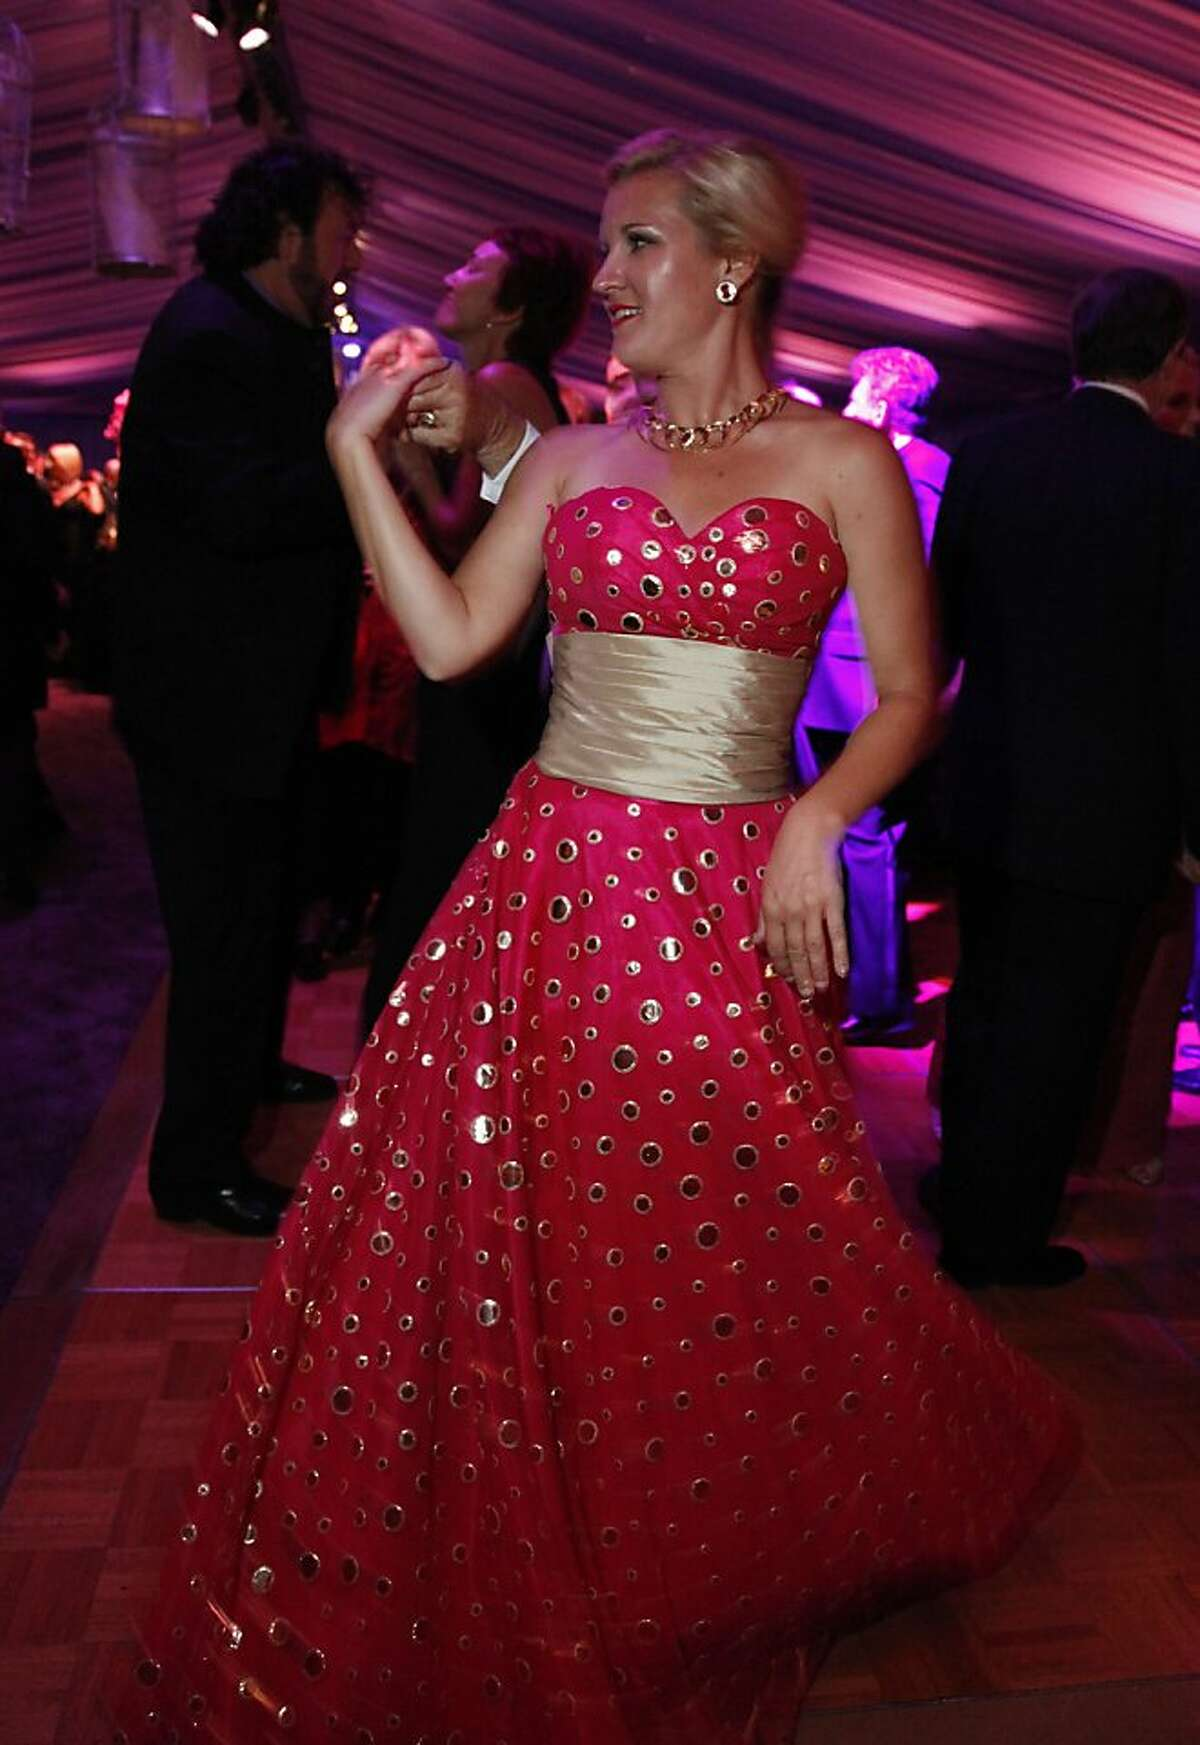 Danielle Mott dances during the after party of the San Francisco Opera's Opera Ball marking the beginning of its 90th season on Friday, Sept. 7, 2012. Those in attendance were entertained with Giuseppe Verdi?•s Rigoletto conducted by Music Director Nicola Luisotti for the season opener.